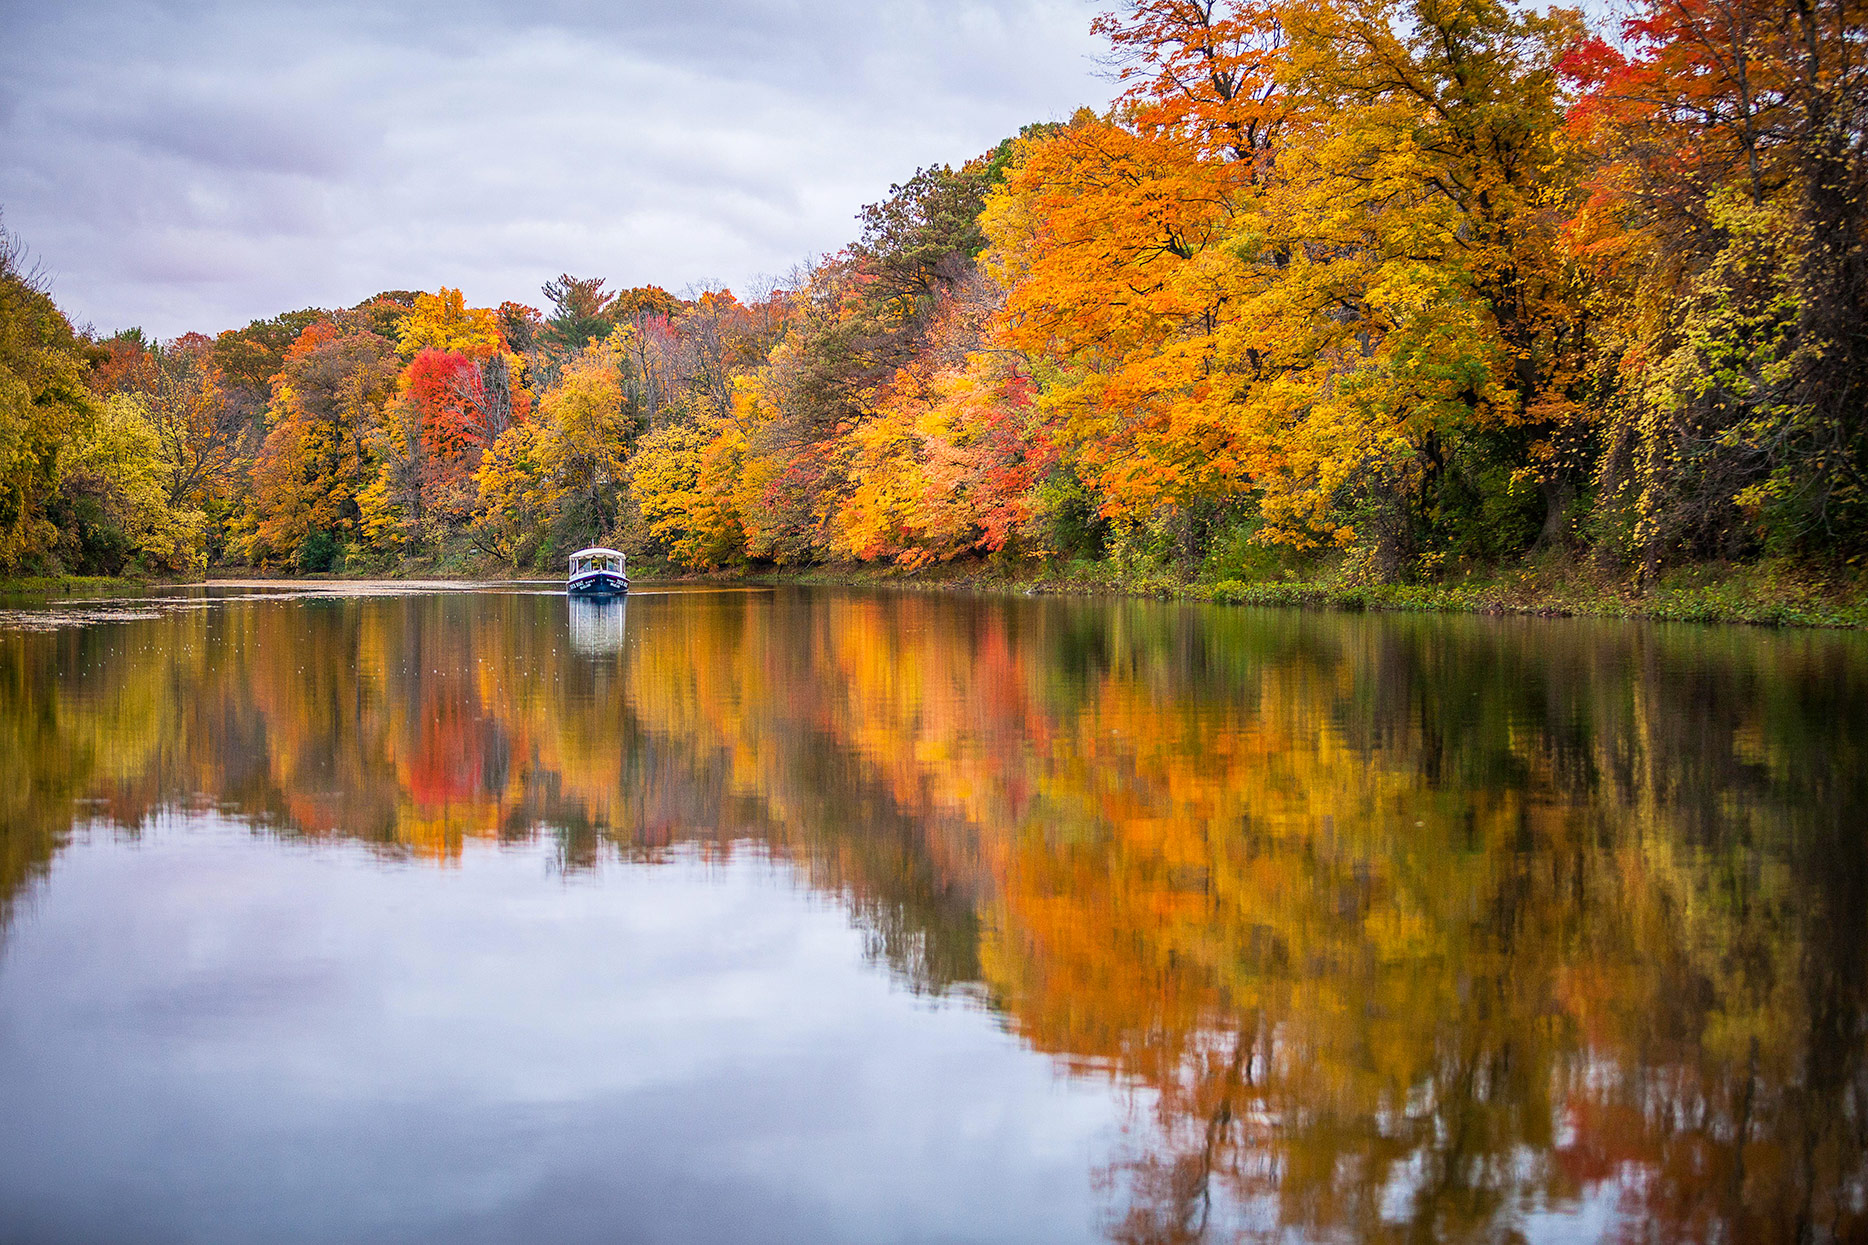 cass river boat tour with fall leaves